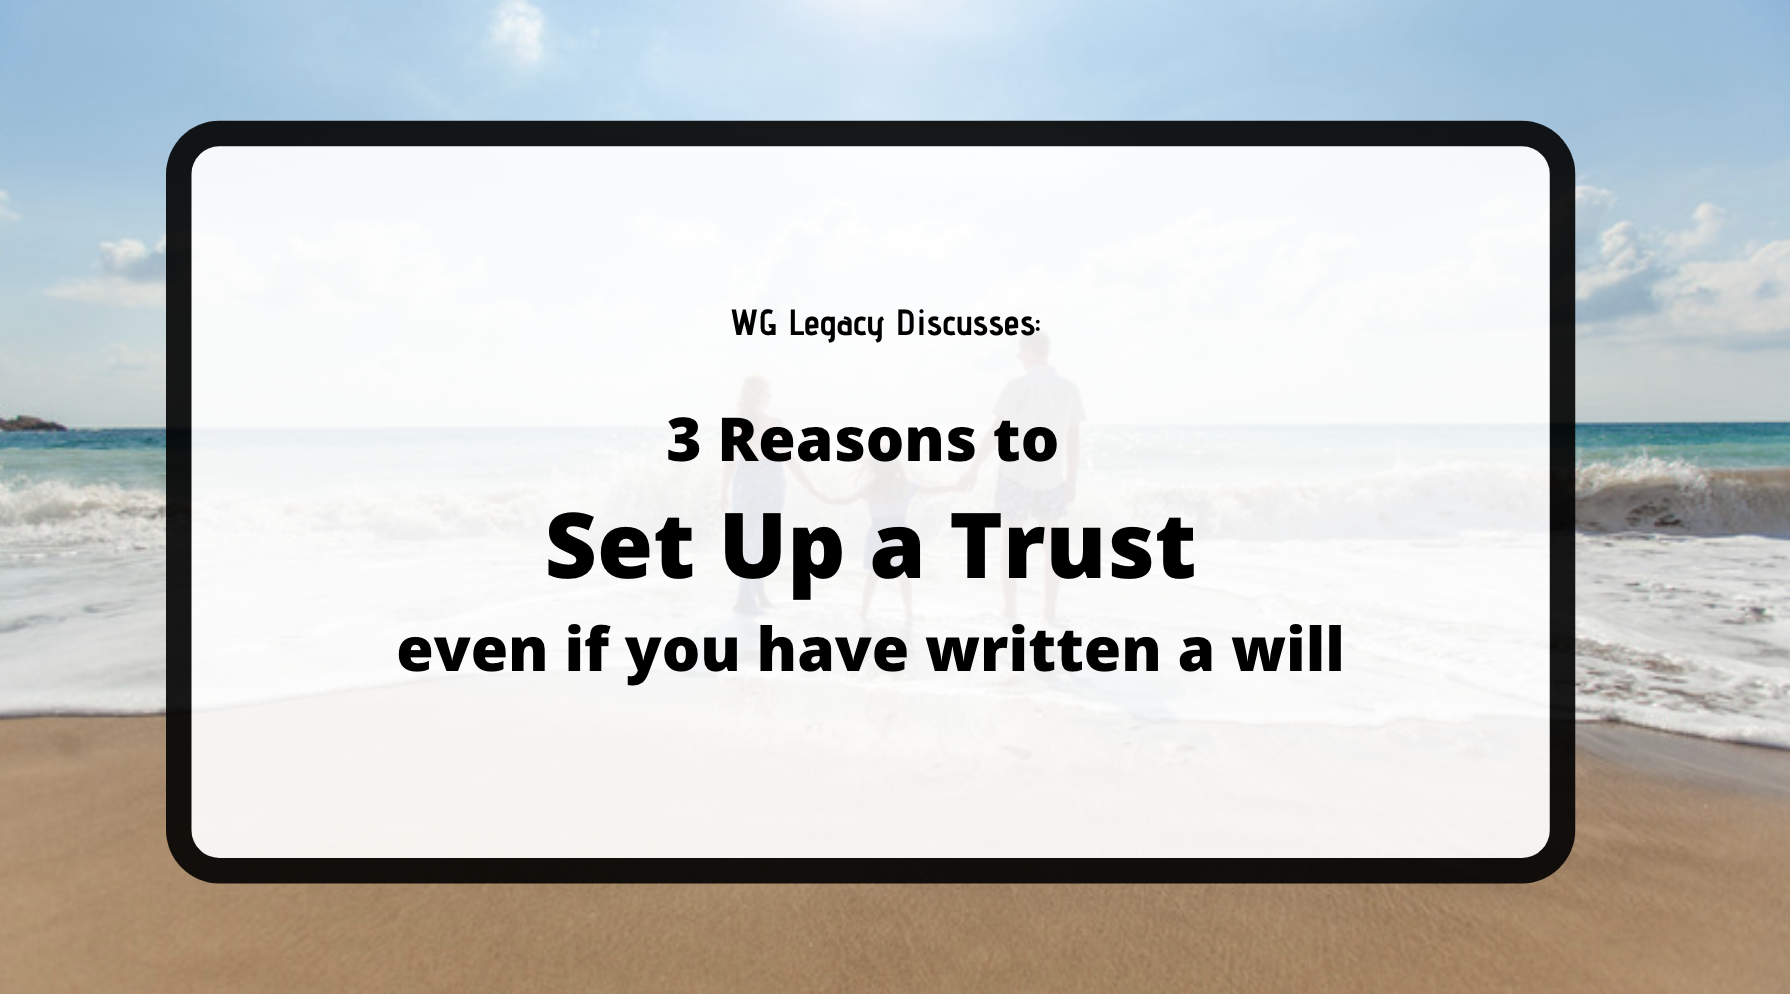 3 Reasons to Set Up a Trust Even if You Have a Will Written